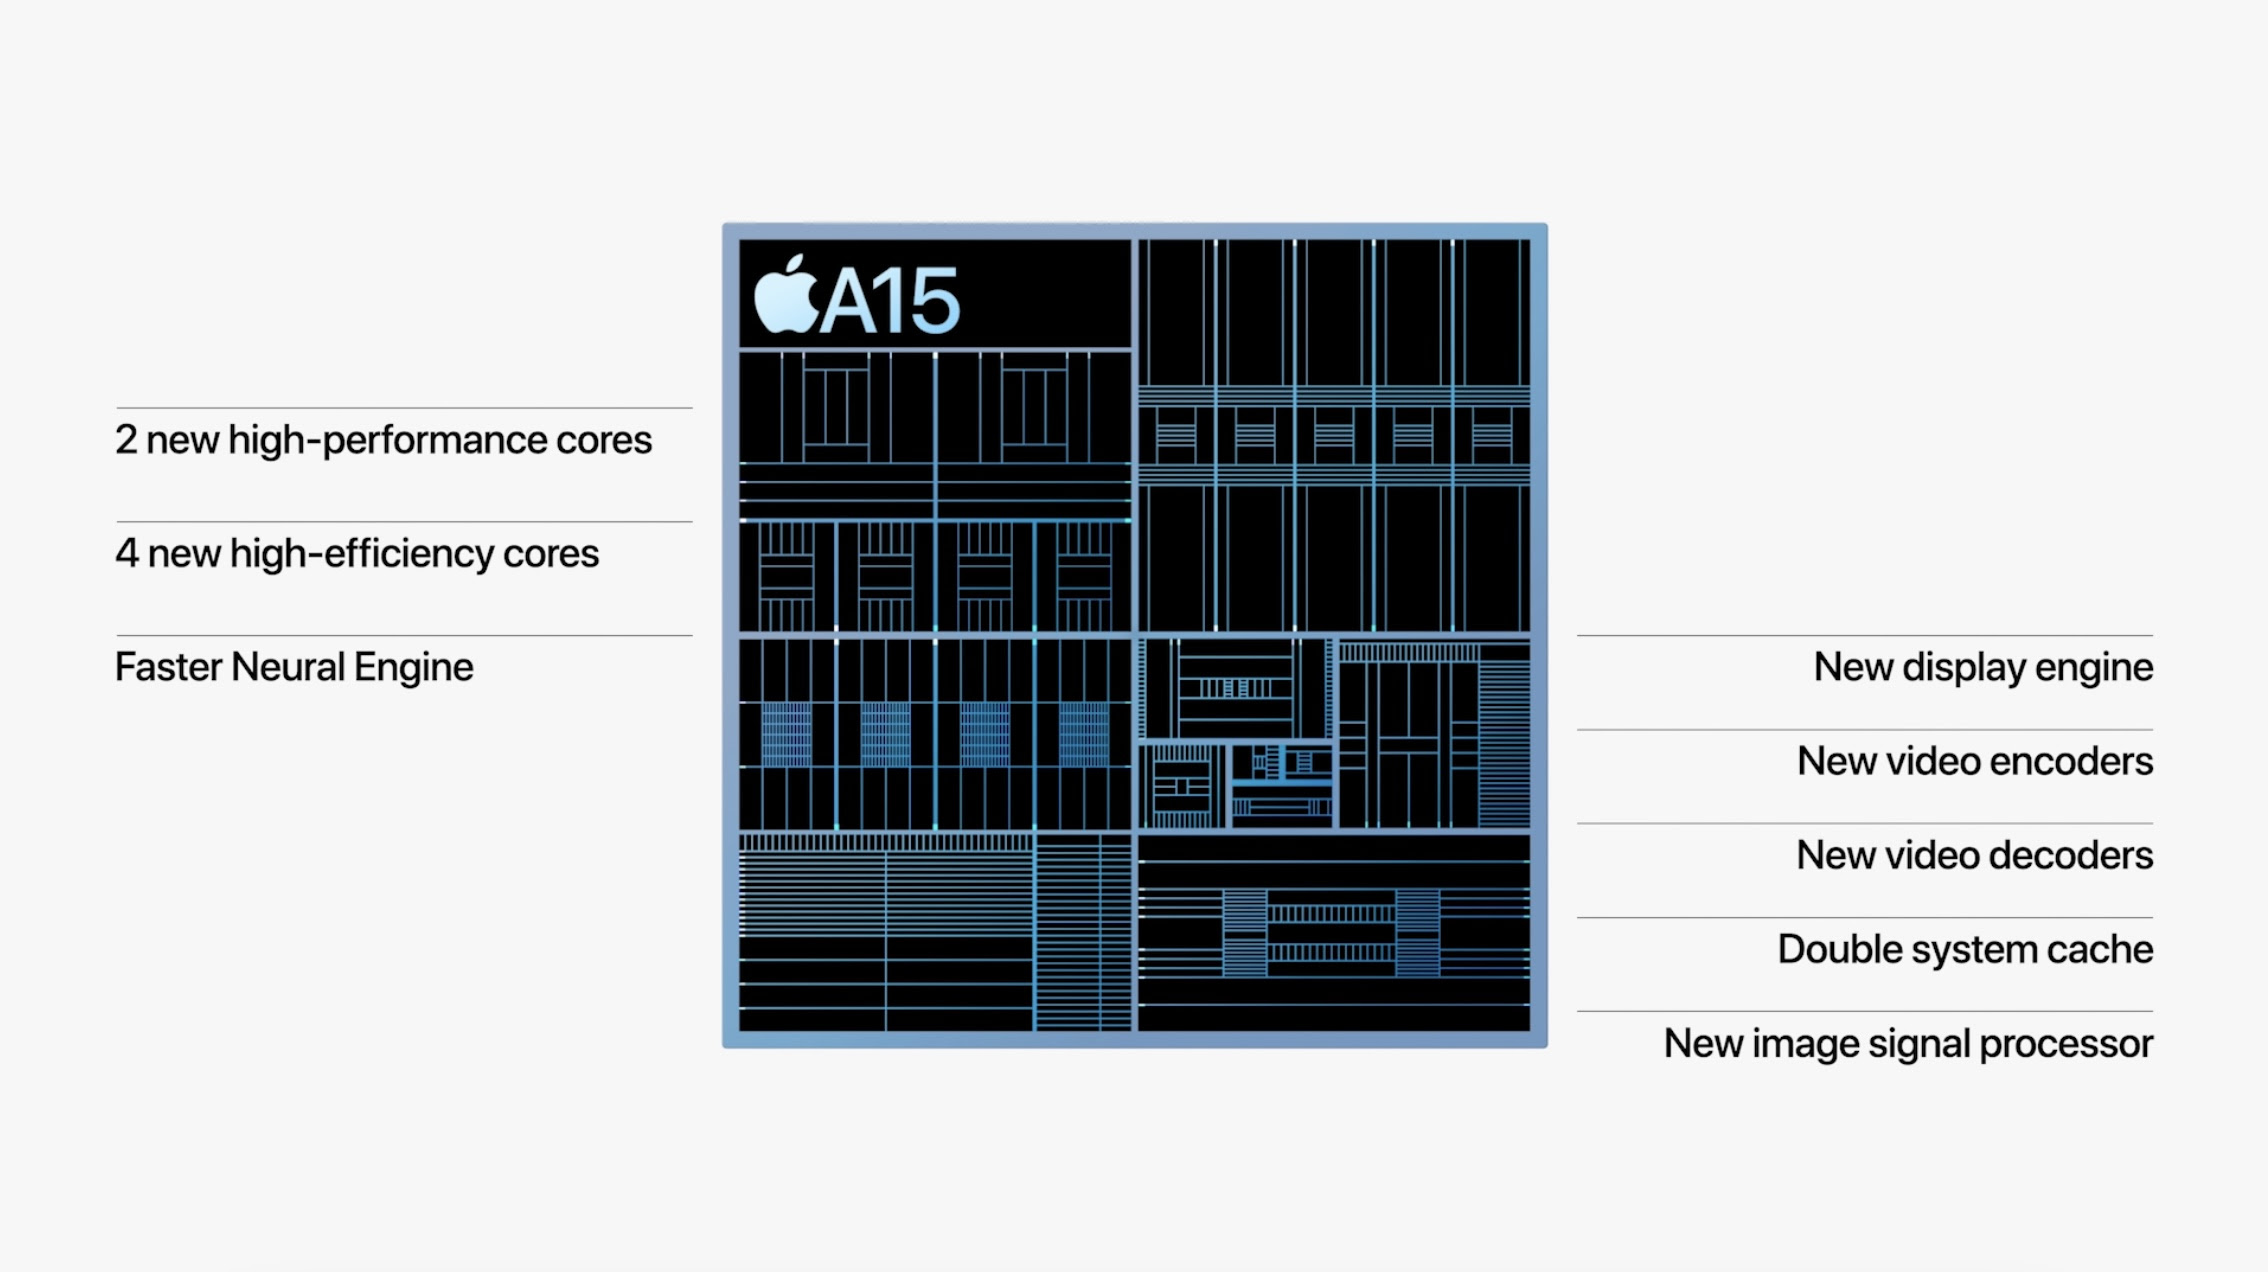 iPhone 13 versus iPhone 12 performance comparisons missing from keynote